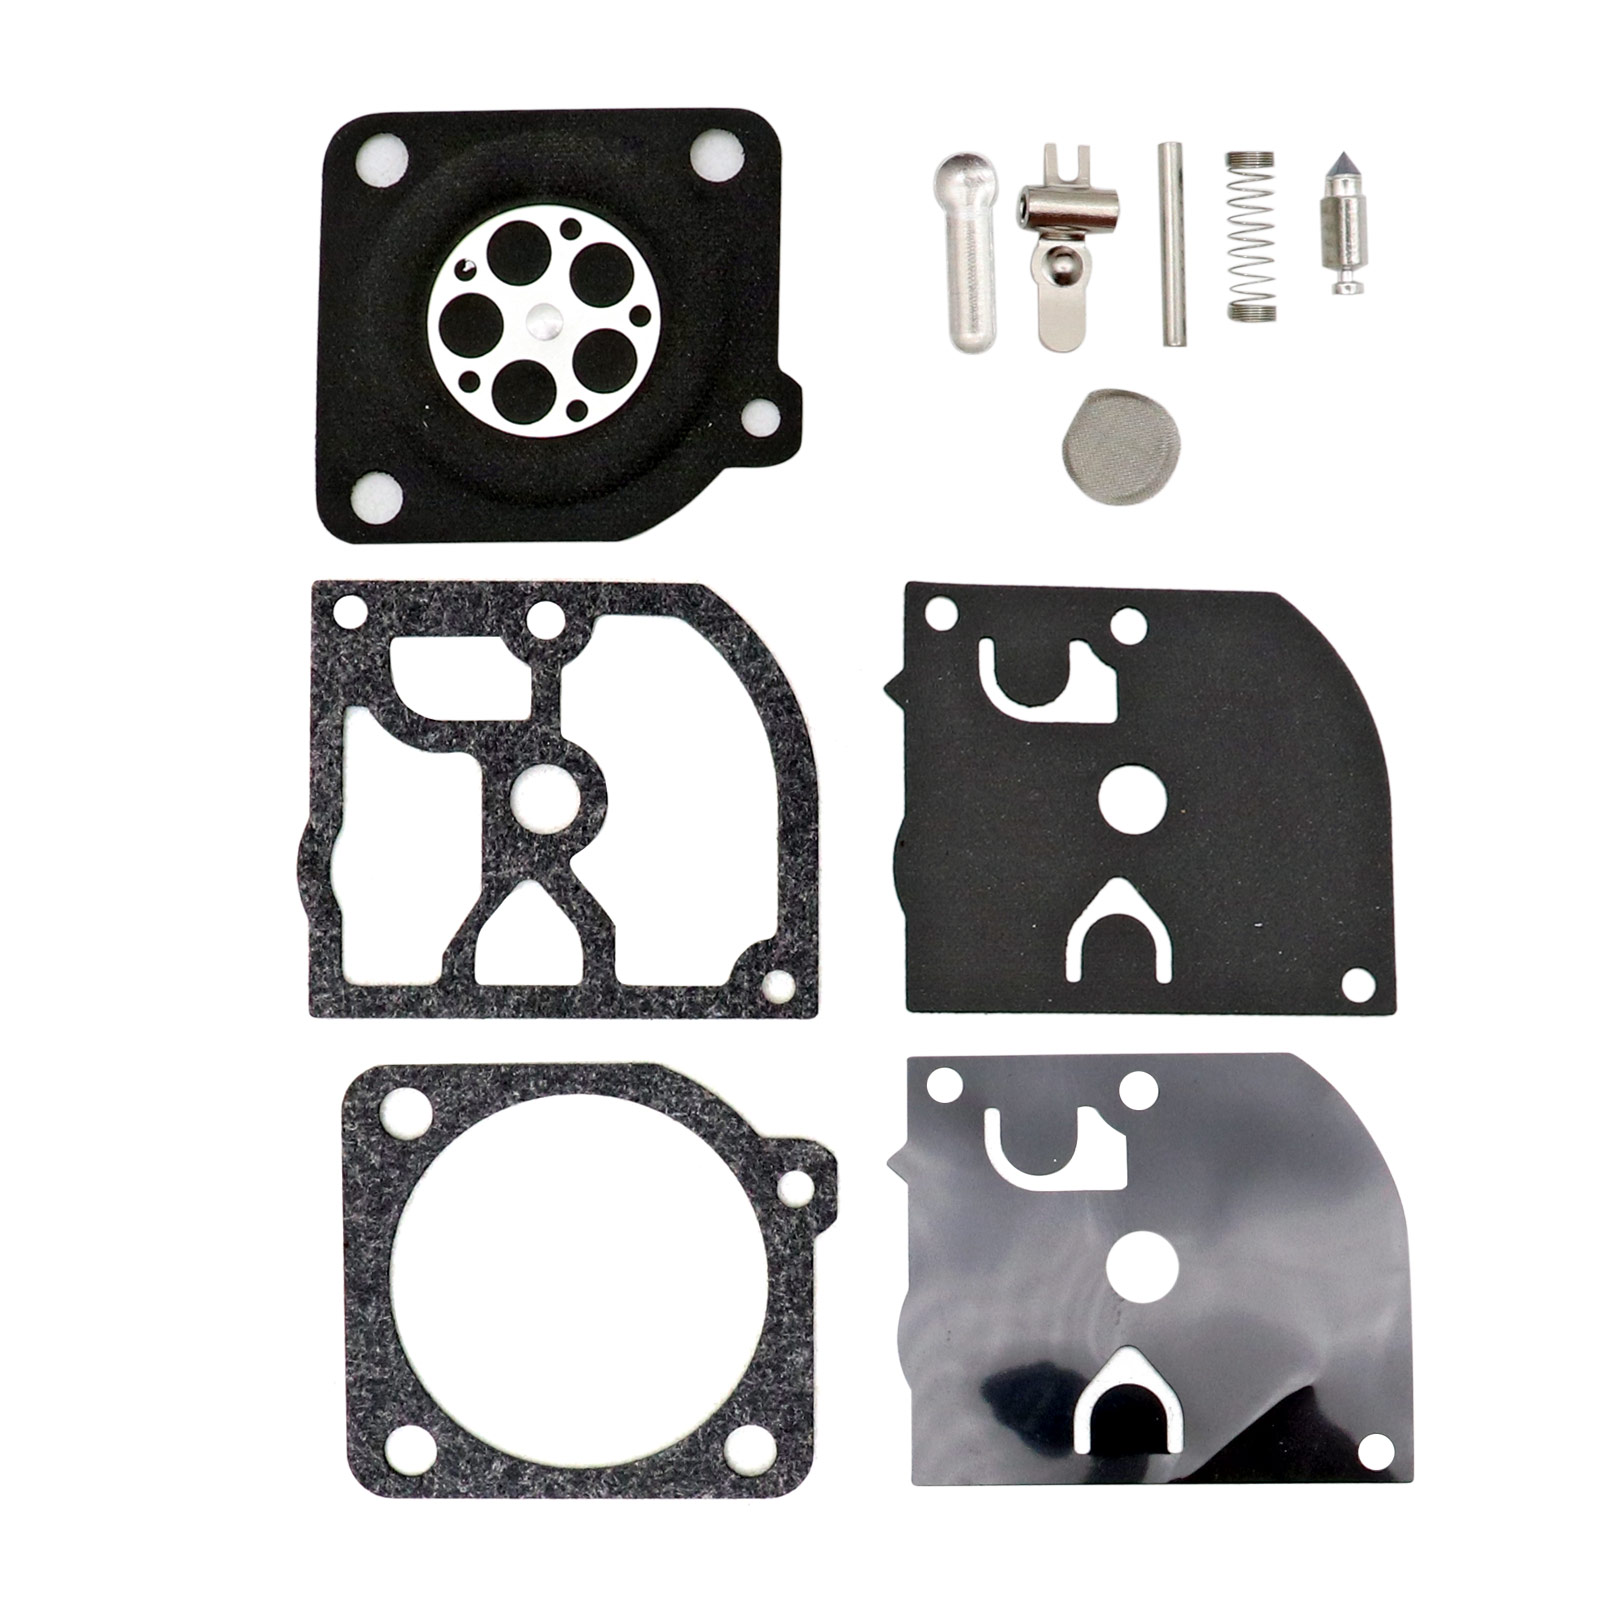 Carb Kit Fits MCCULLOCH Craftsman MAC 3214 3200 3516 3816 3818 chainsaw FOR ZAMA